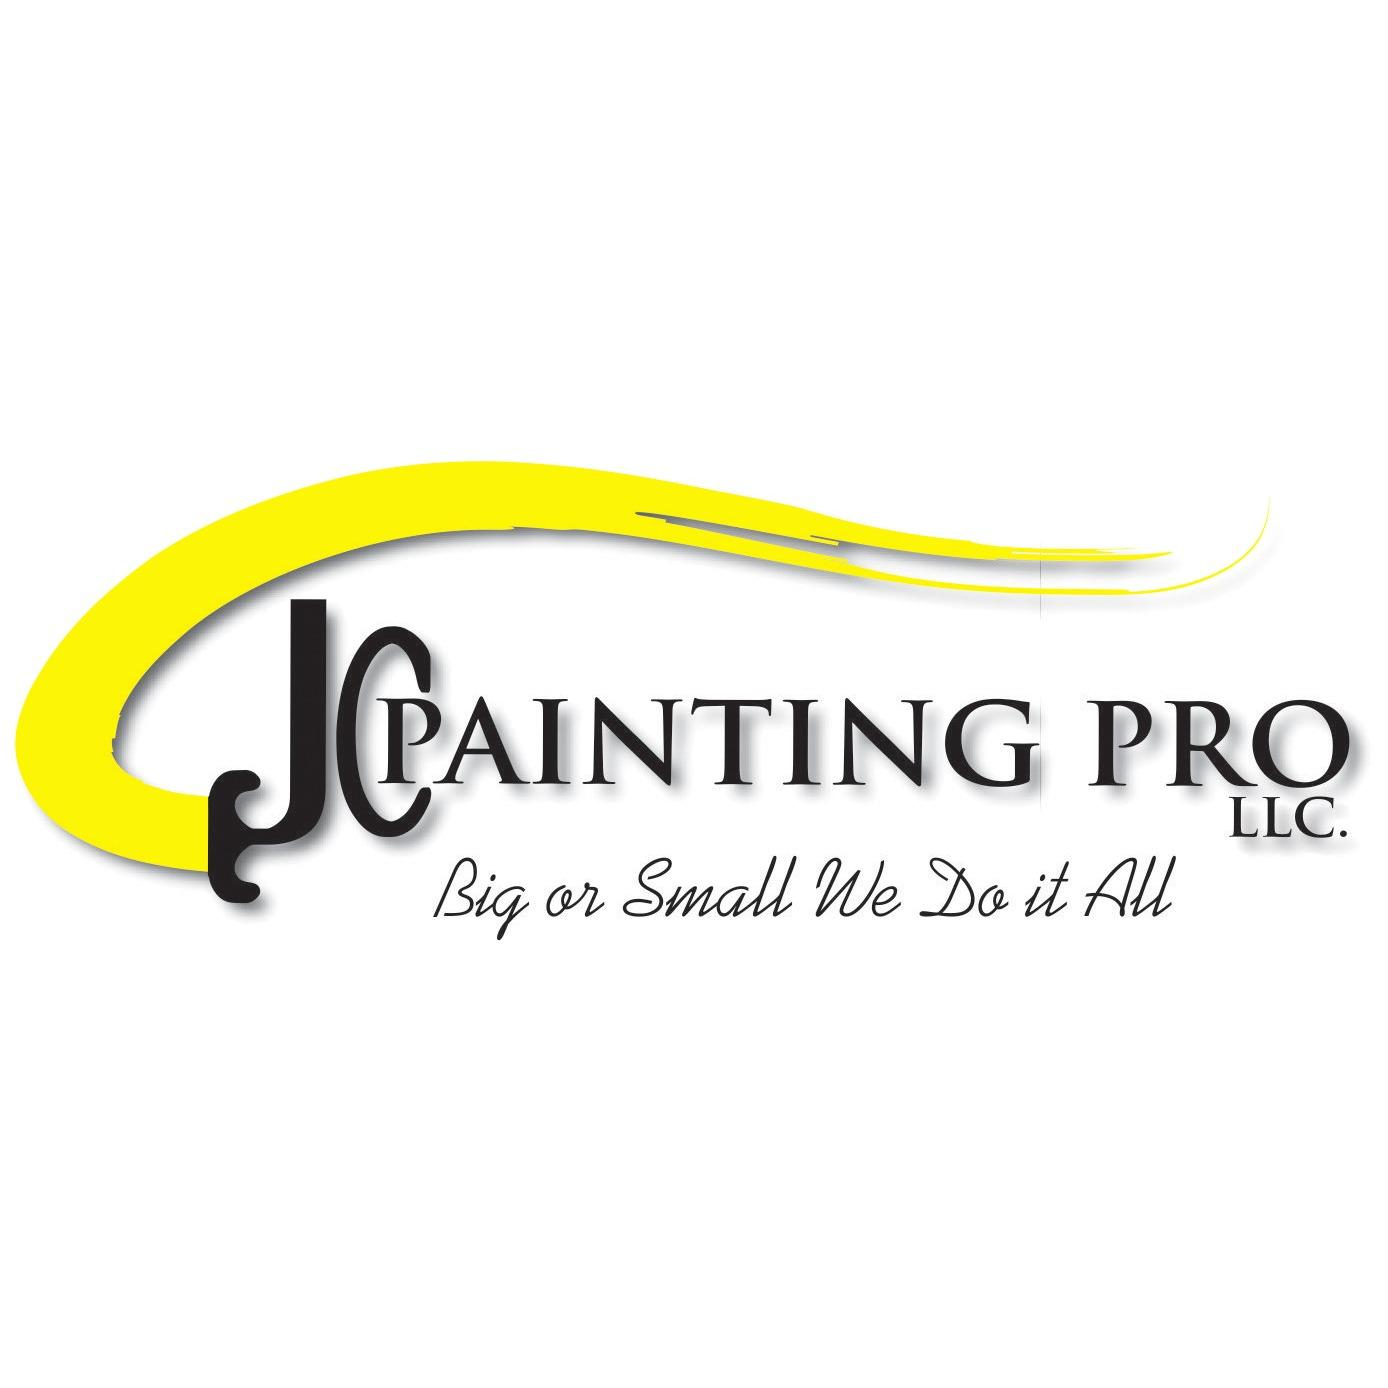 Jc painting pro llc greater seattle painting contractor for Paint pros